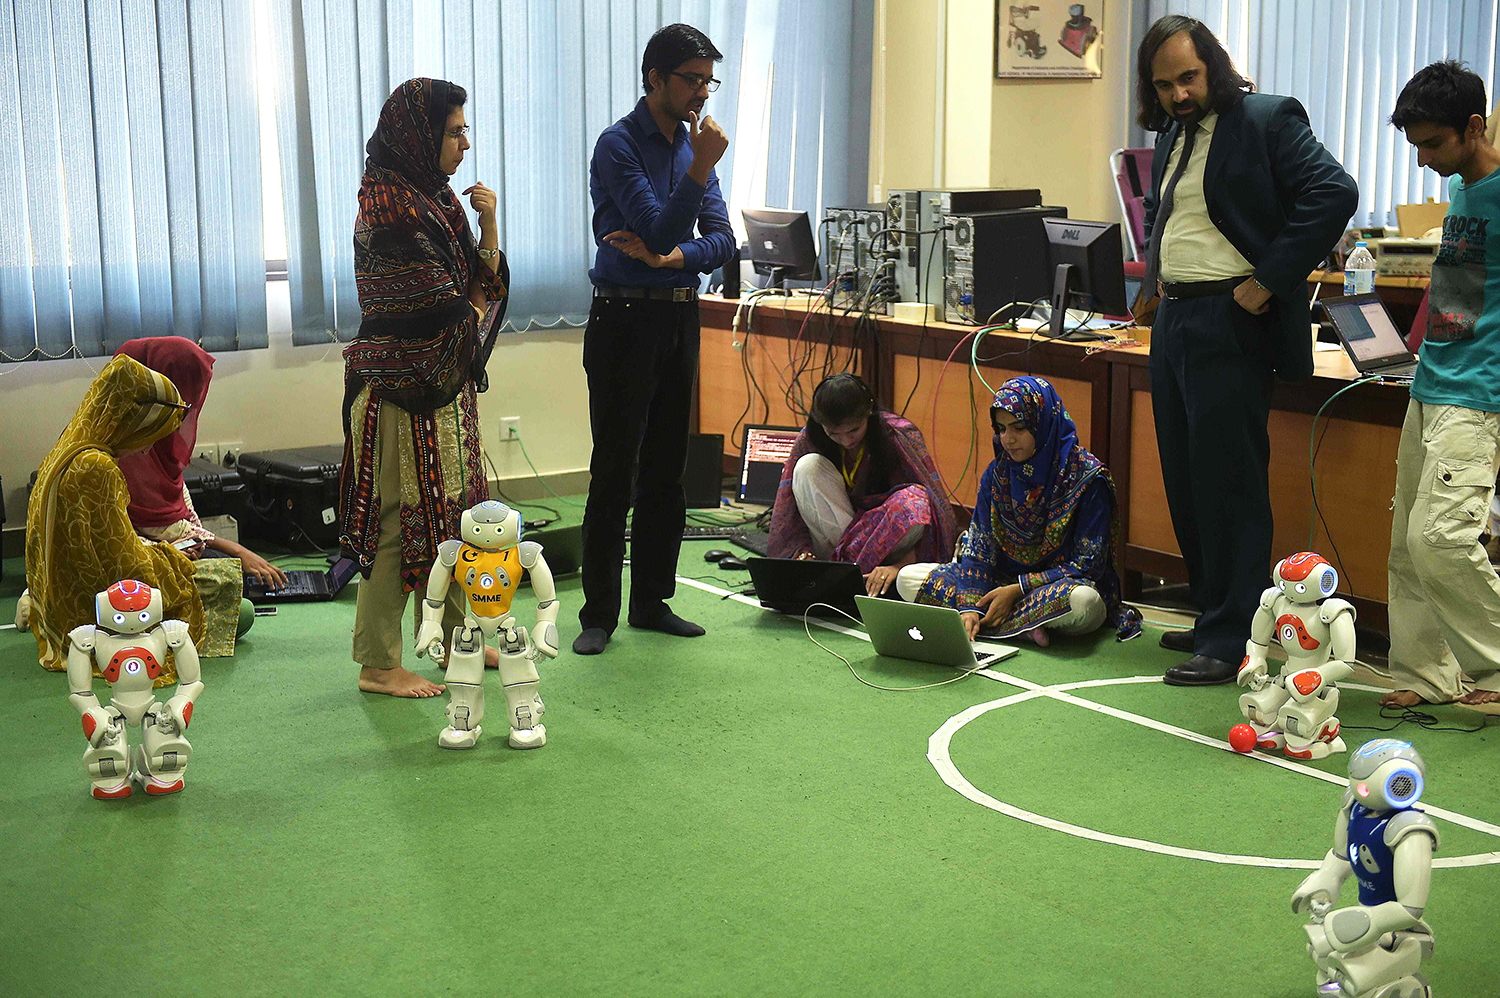 Students and team members of Robotics and Intelligence Systems Engineering (RISE) programme their robot football players. — AFP